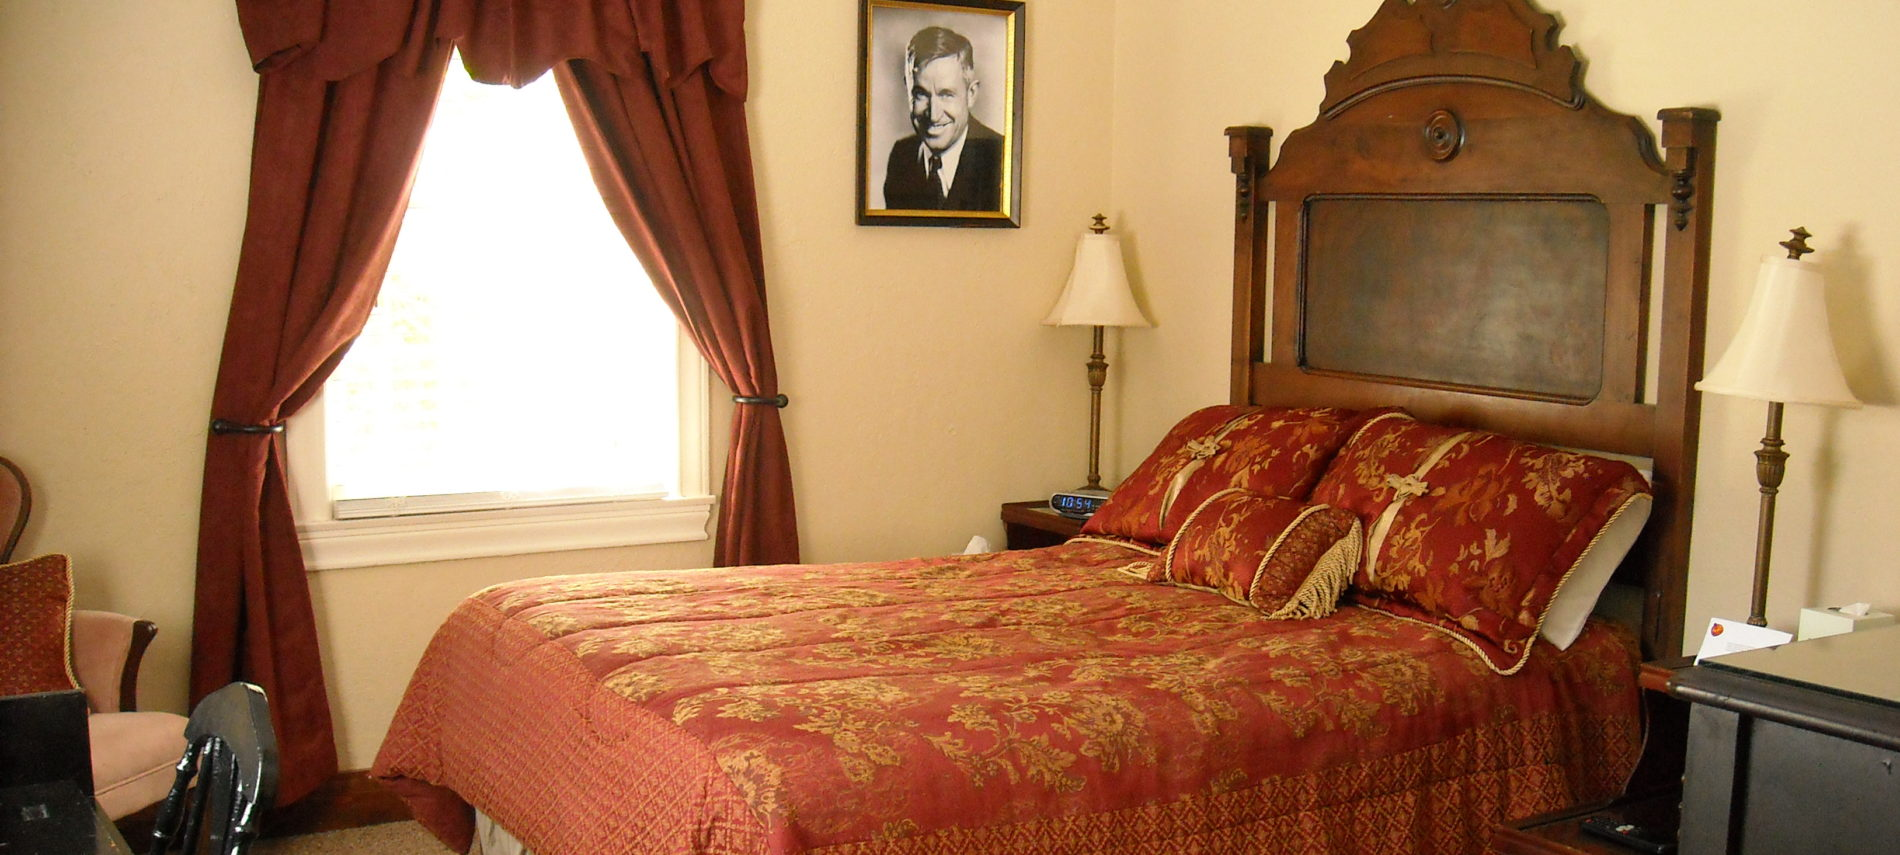 Wooden highback bed is topped with black and gold coverlet. The walls around it feature screen shots from the movie Casablanca and Parisian themed wall art